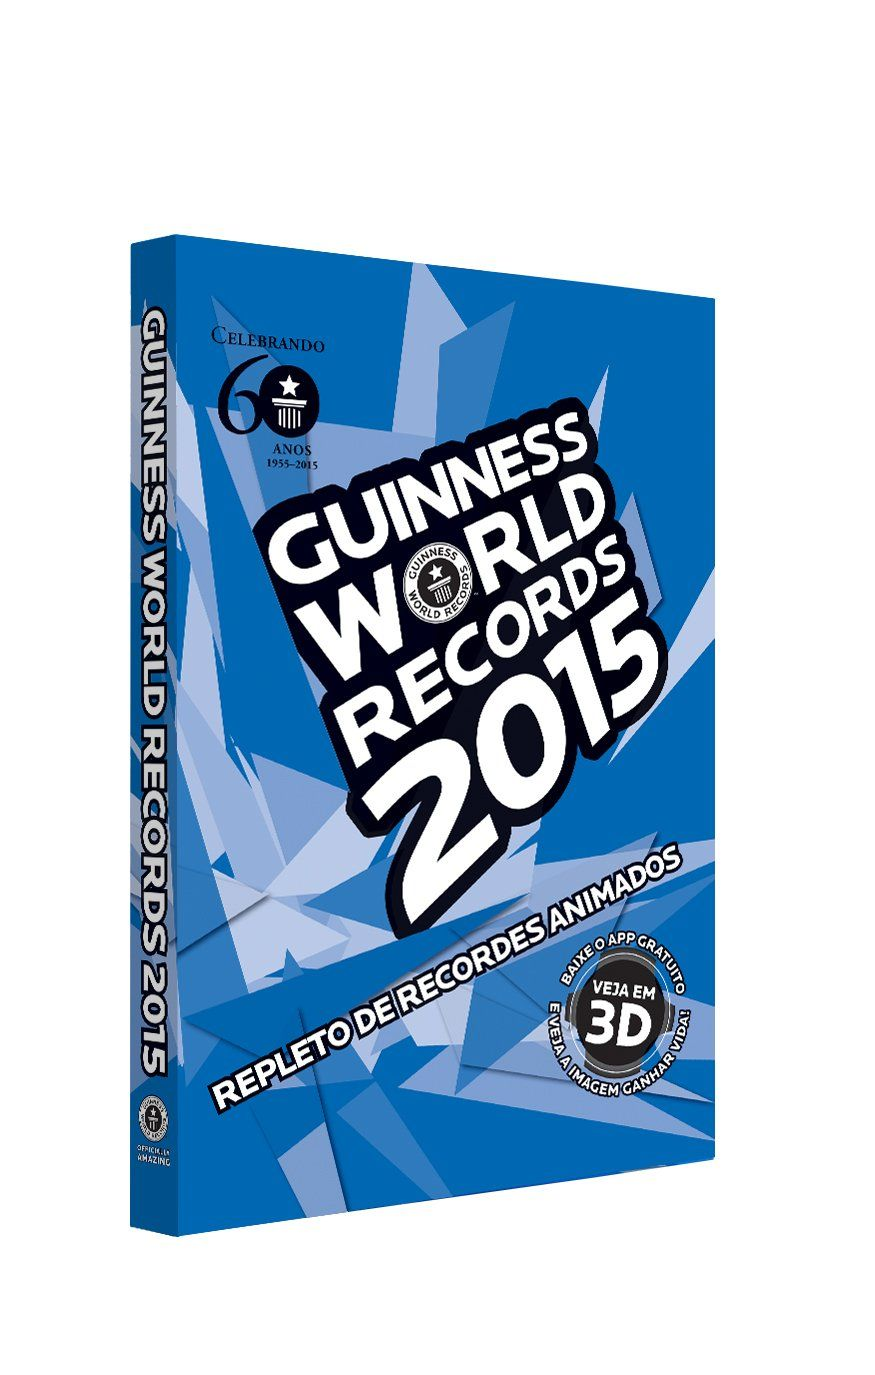 EDI-GUINNESS WORLD RECORD 2015